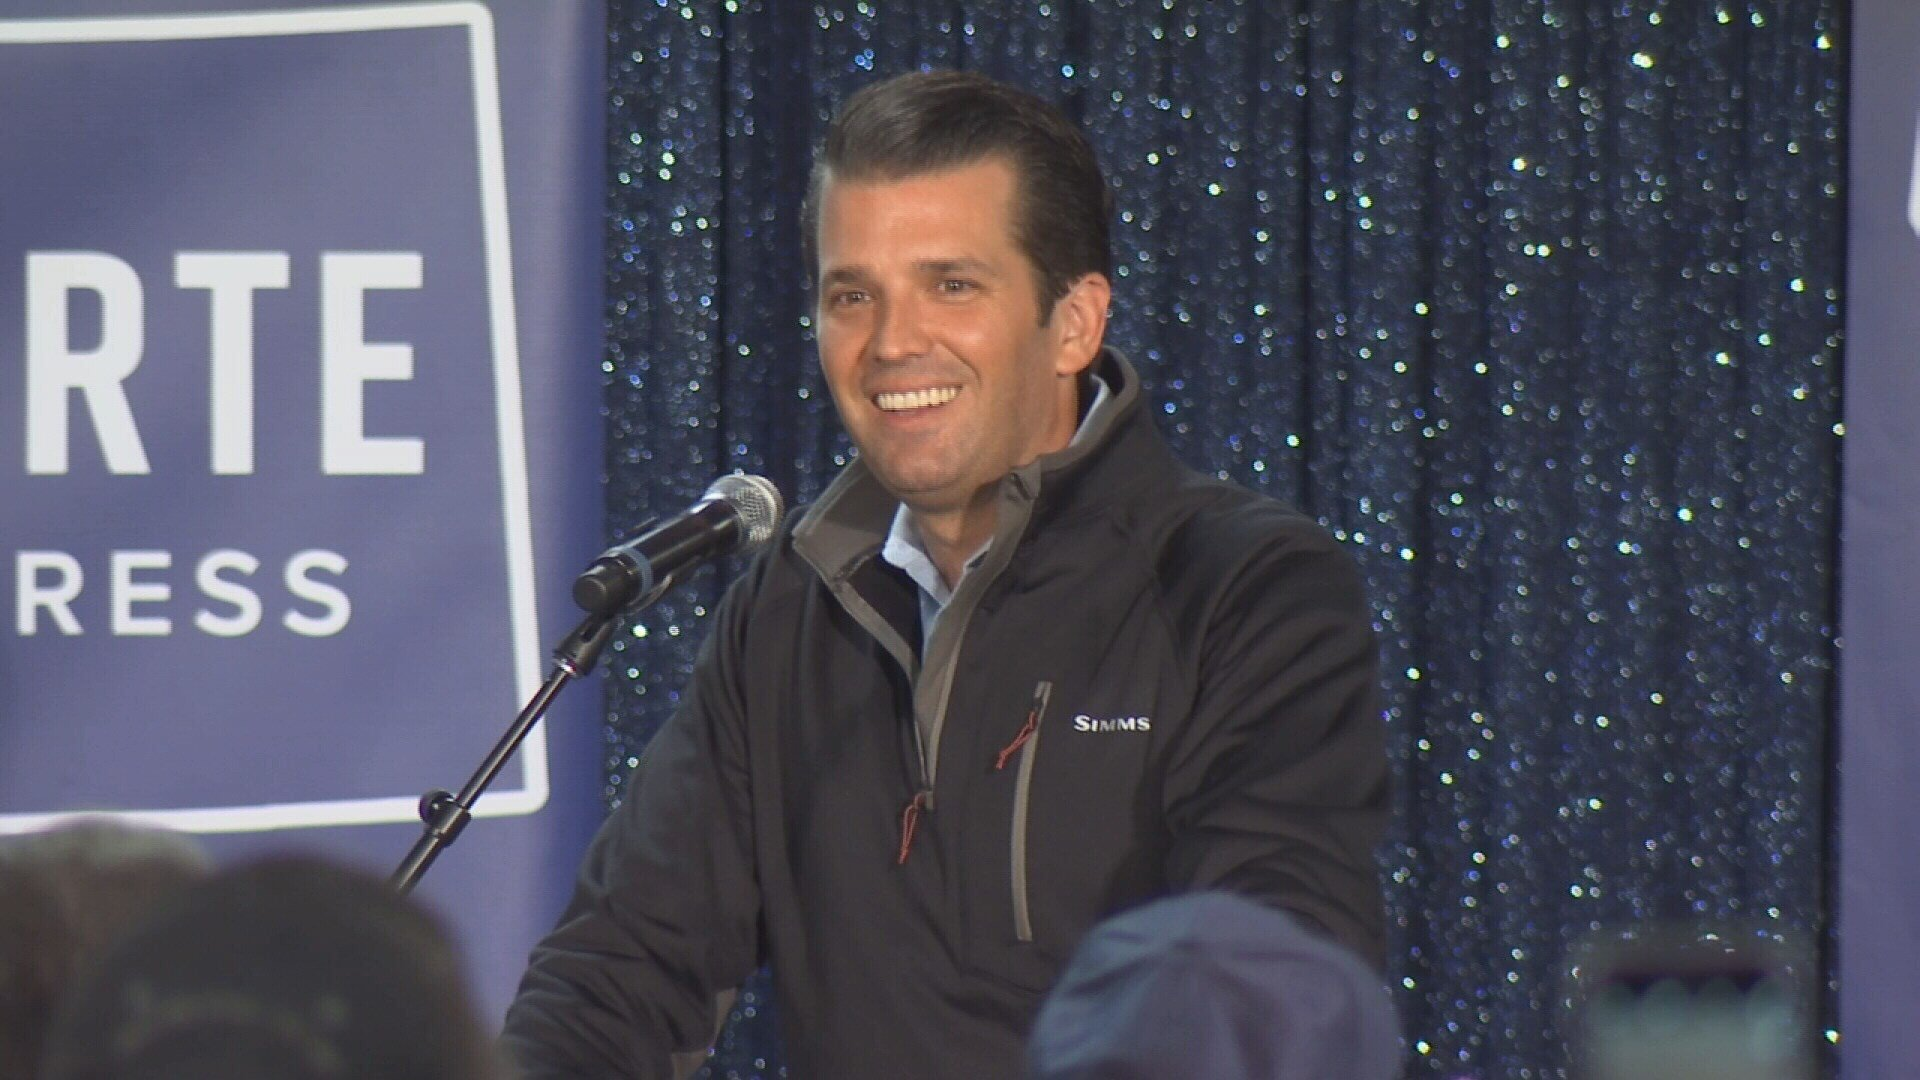 Donald Trump Jr. at rally for Greg Gianforte on Friday.